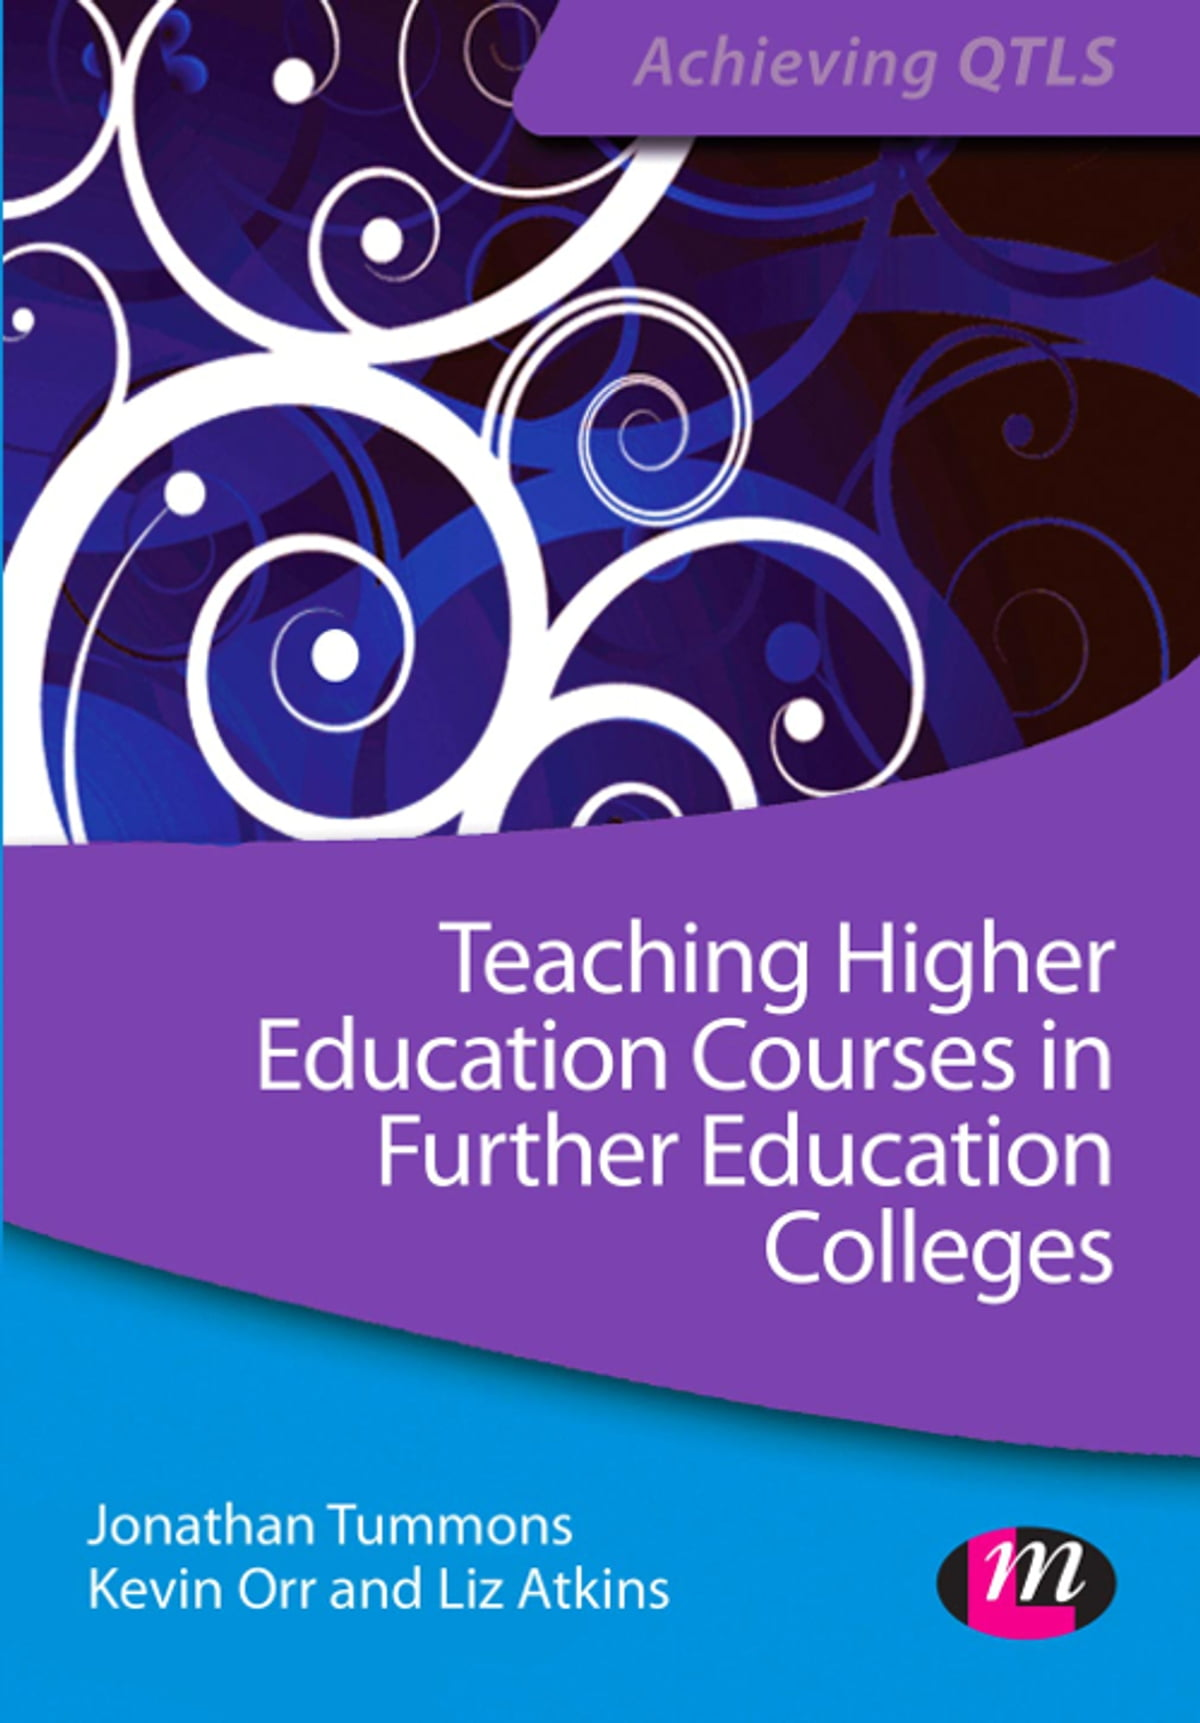 Teaching Higher Education Courses in Further Education Colleges eBook by  Jonathan Tummons - 9781446296011 | Rakuten Kobo